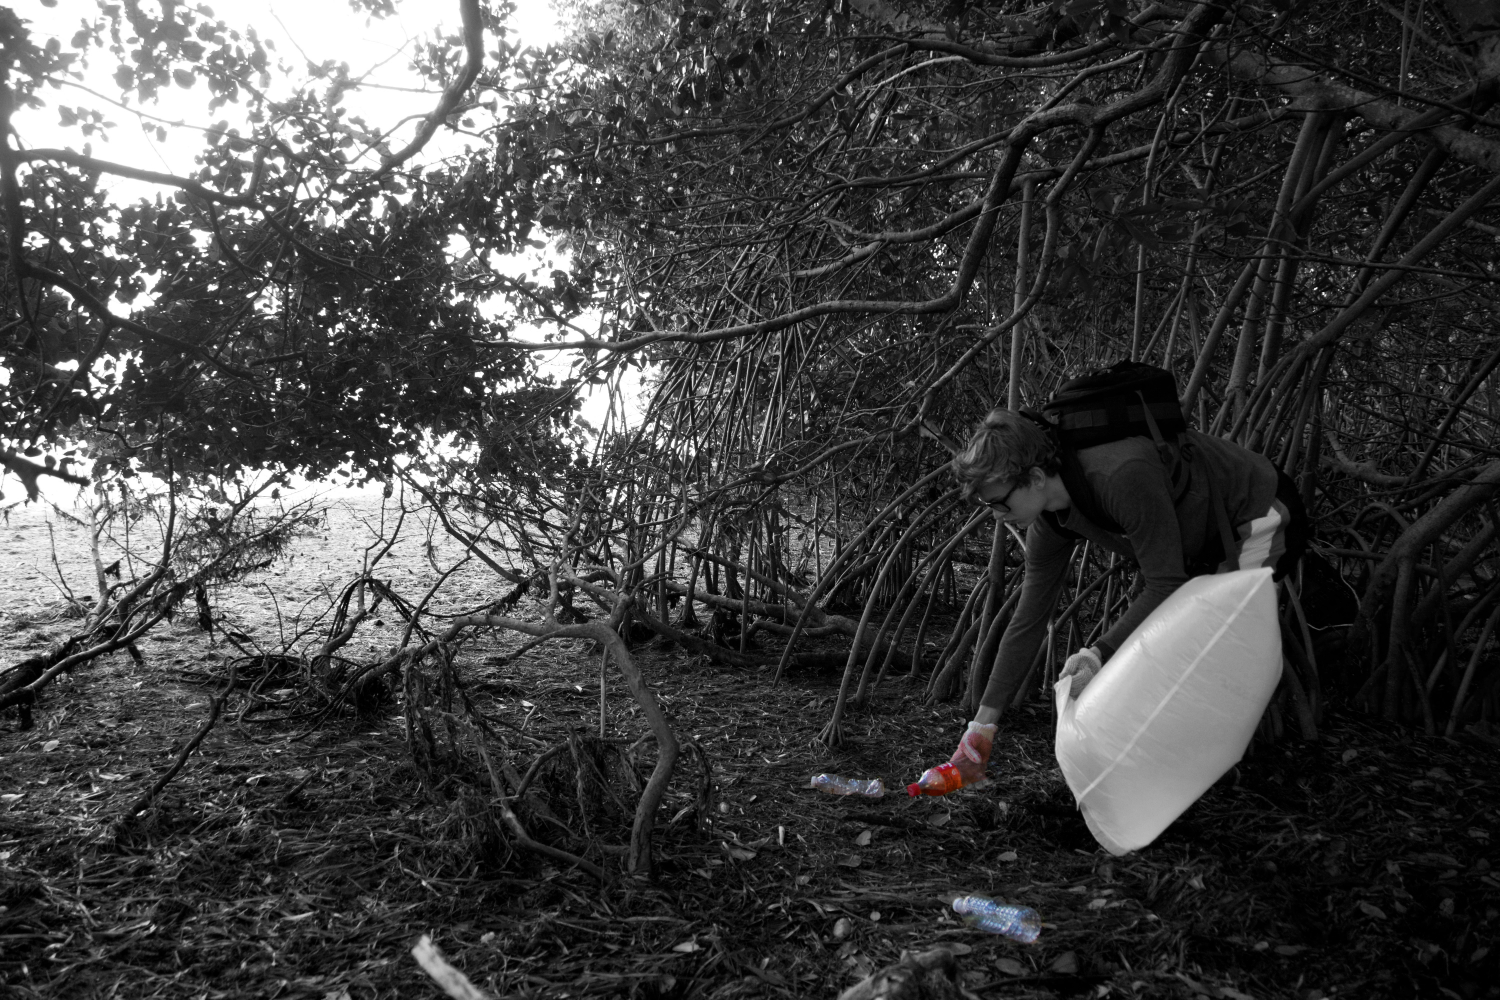 Litter cleanup around mangroves